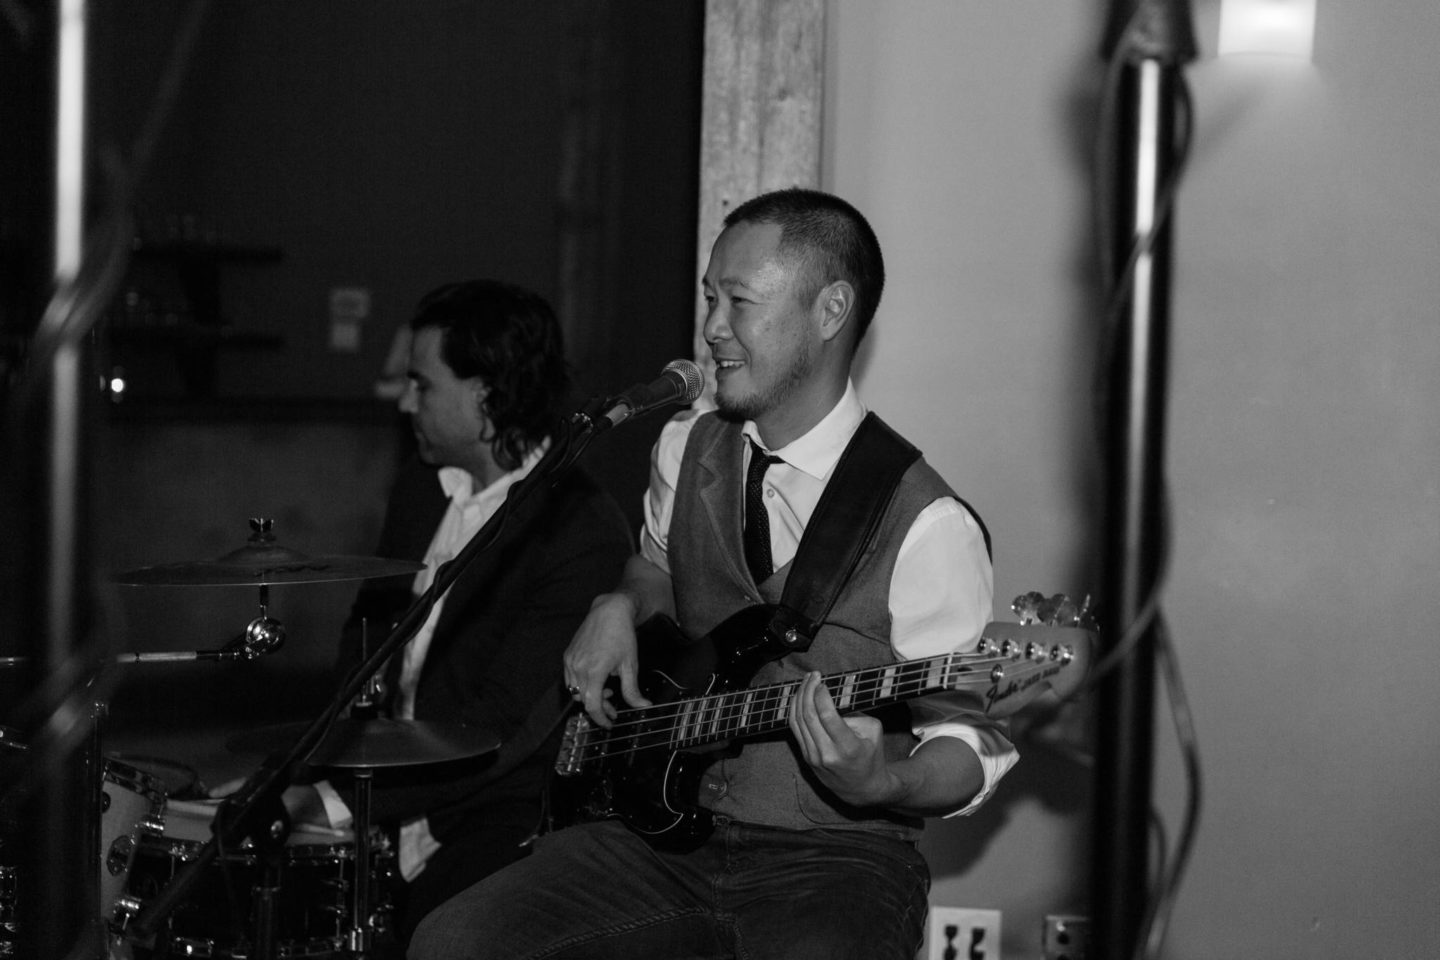 Jackson miles band performing at a wedding in Ottawa, le belvedere